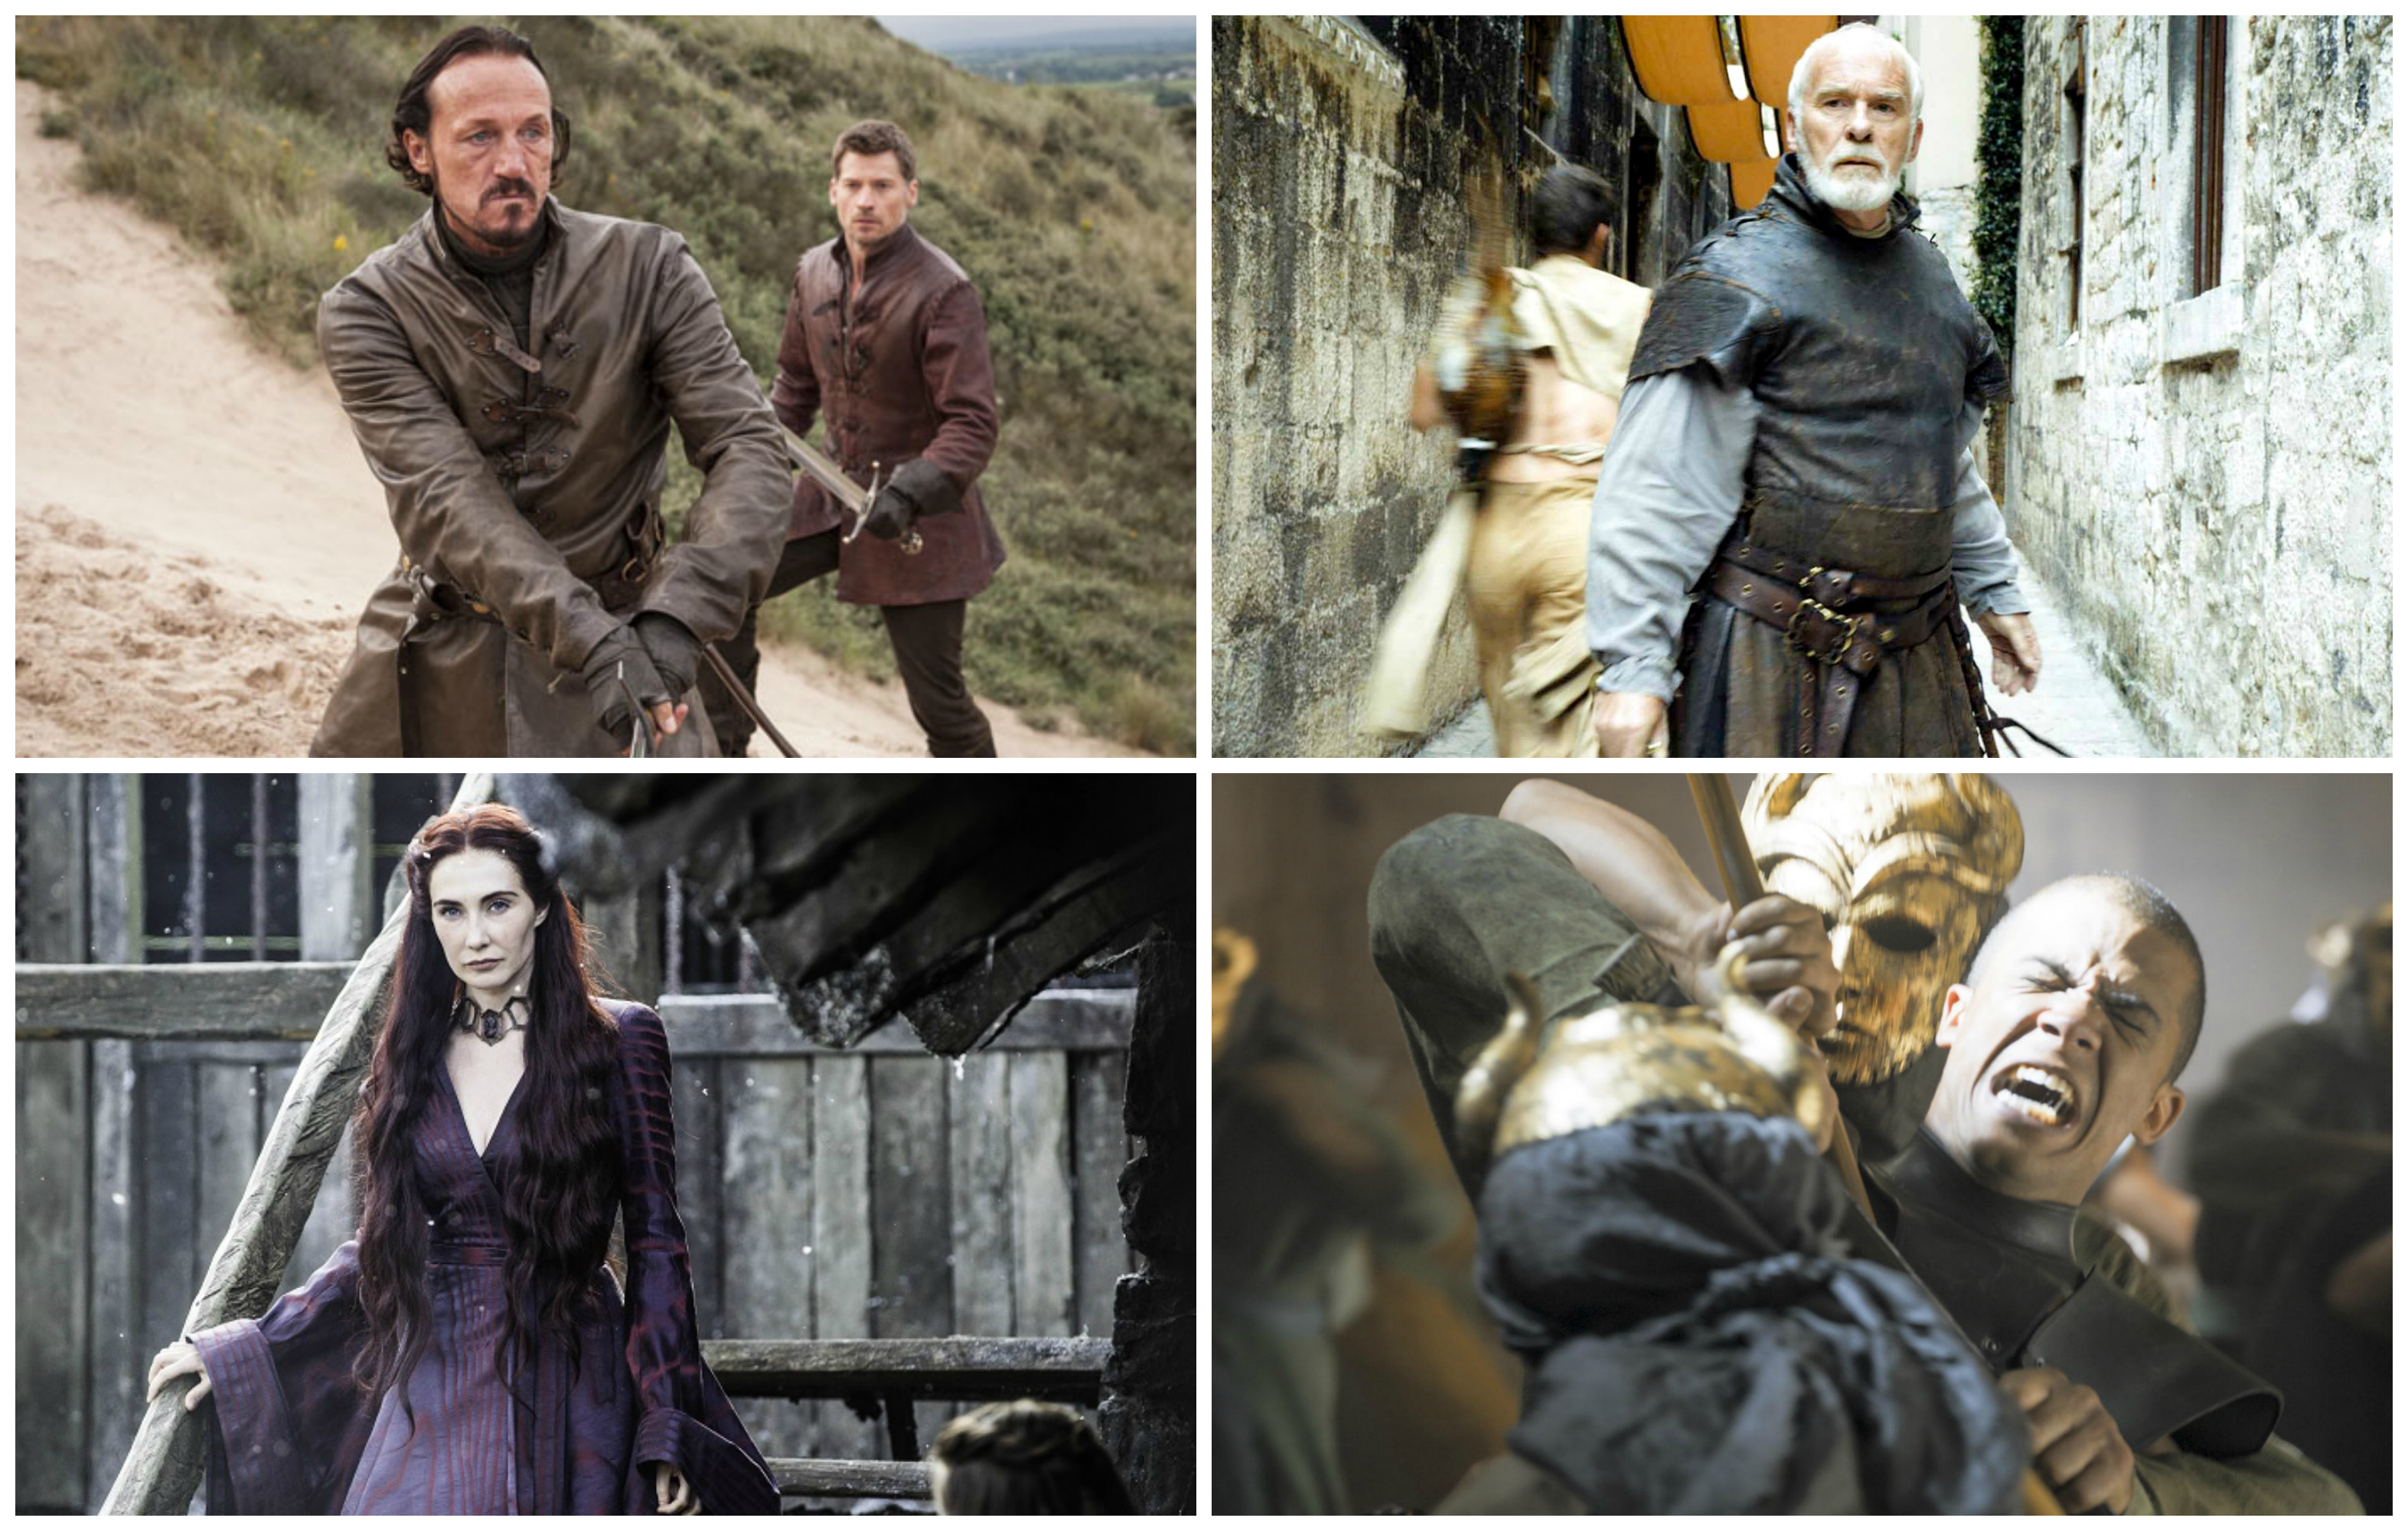 Episode 214: Game of Thrones - S5E4 - Sons of the Harpy